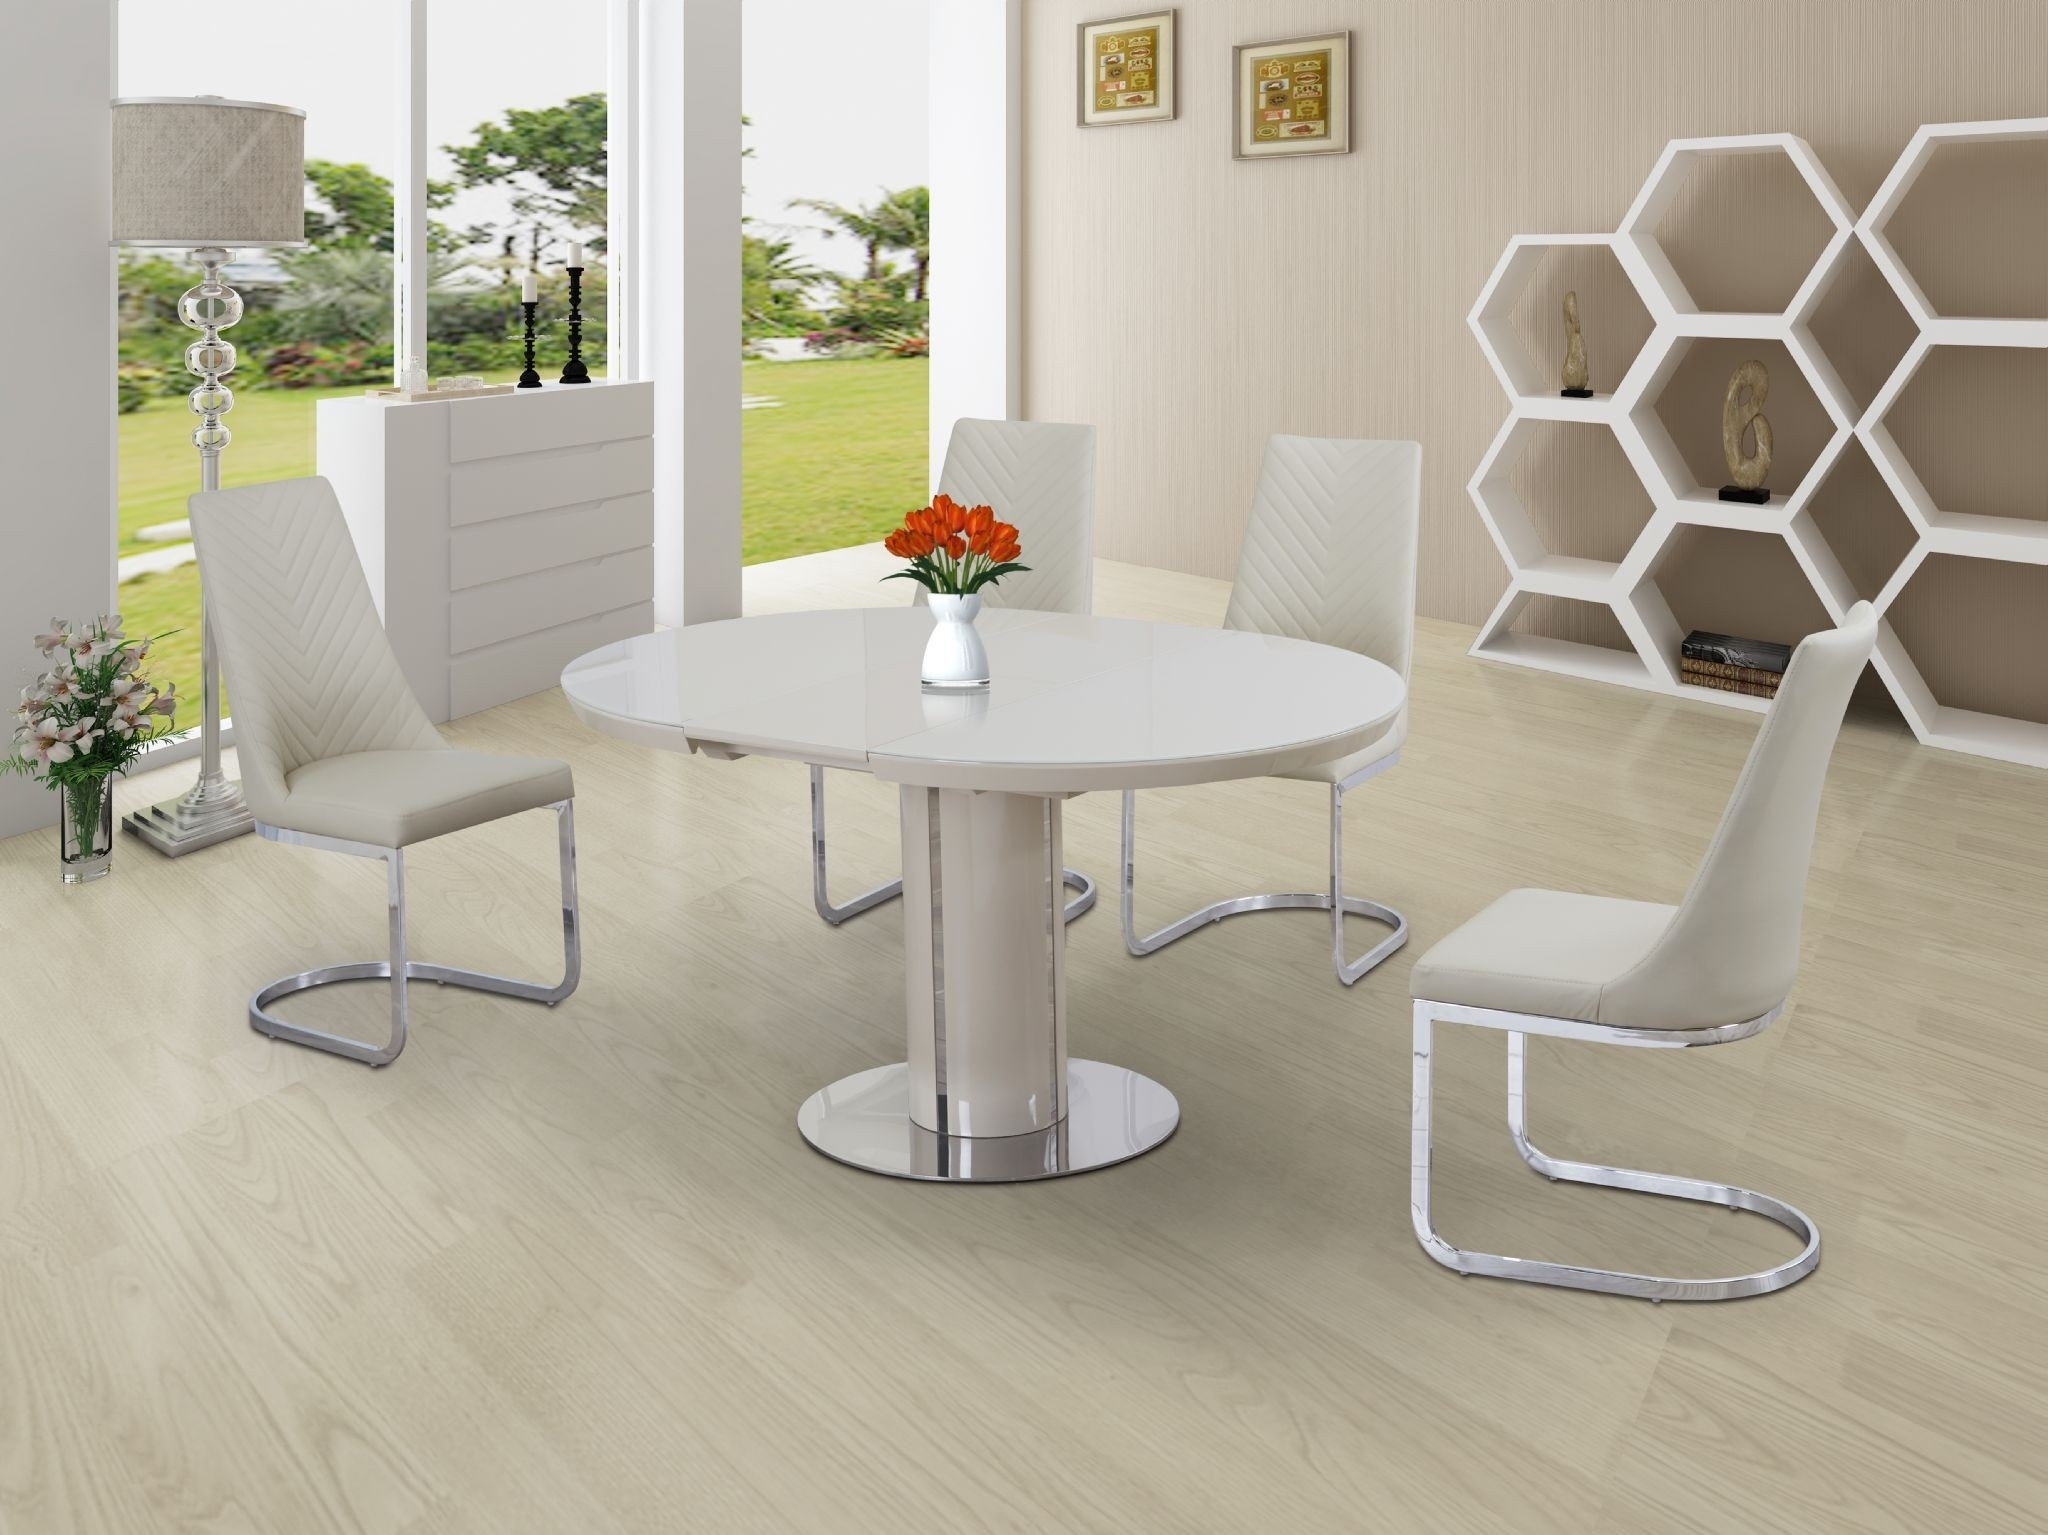 Buy Annular Cream High Gloss Extending Dining Table Pertaining To Most Recent High Gloss Dining Tables Sets (View 12 of 25)